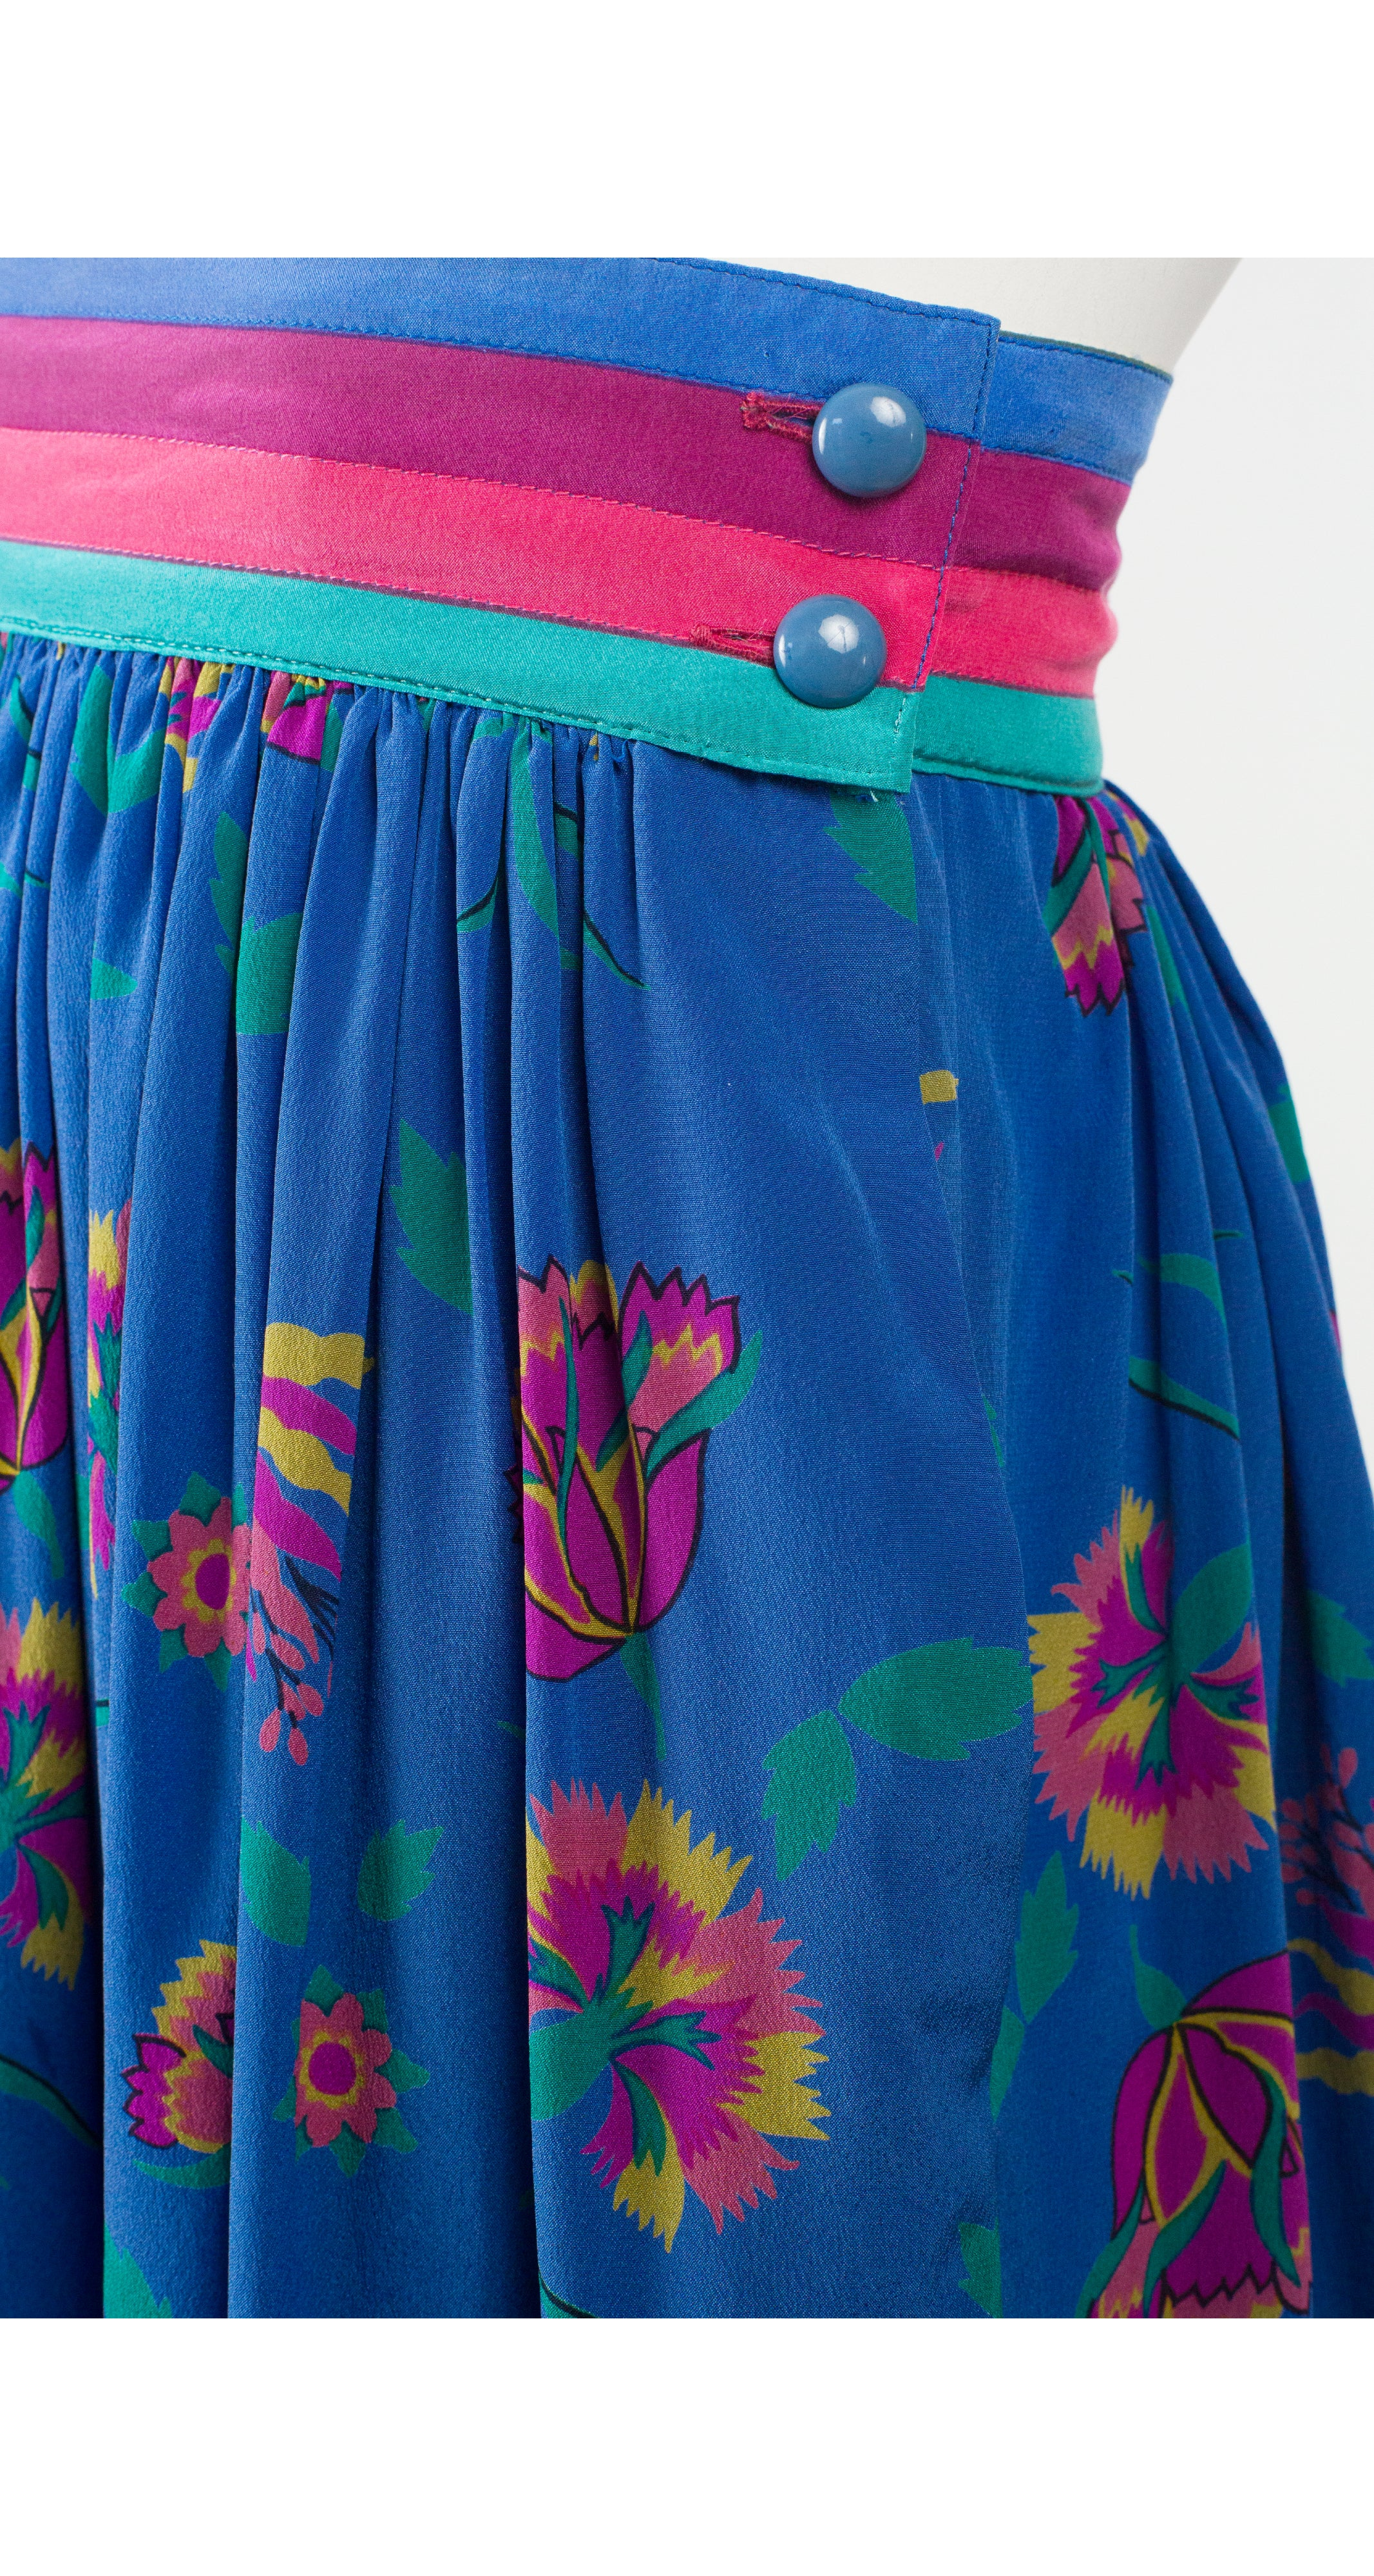 1980s Floral Blue Silk Pleated High-Waisted Skirt